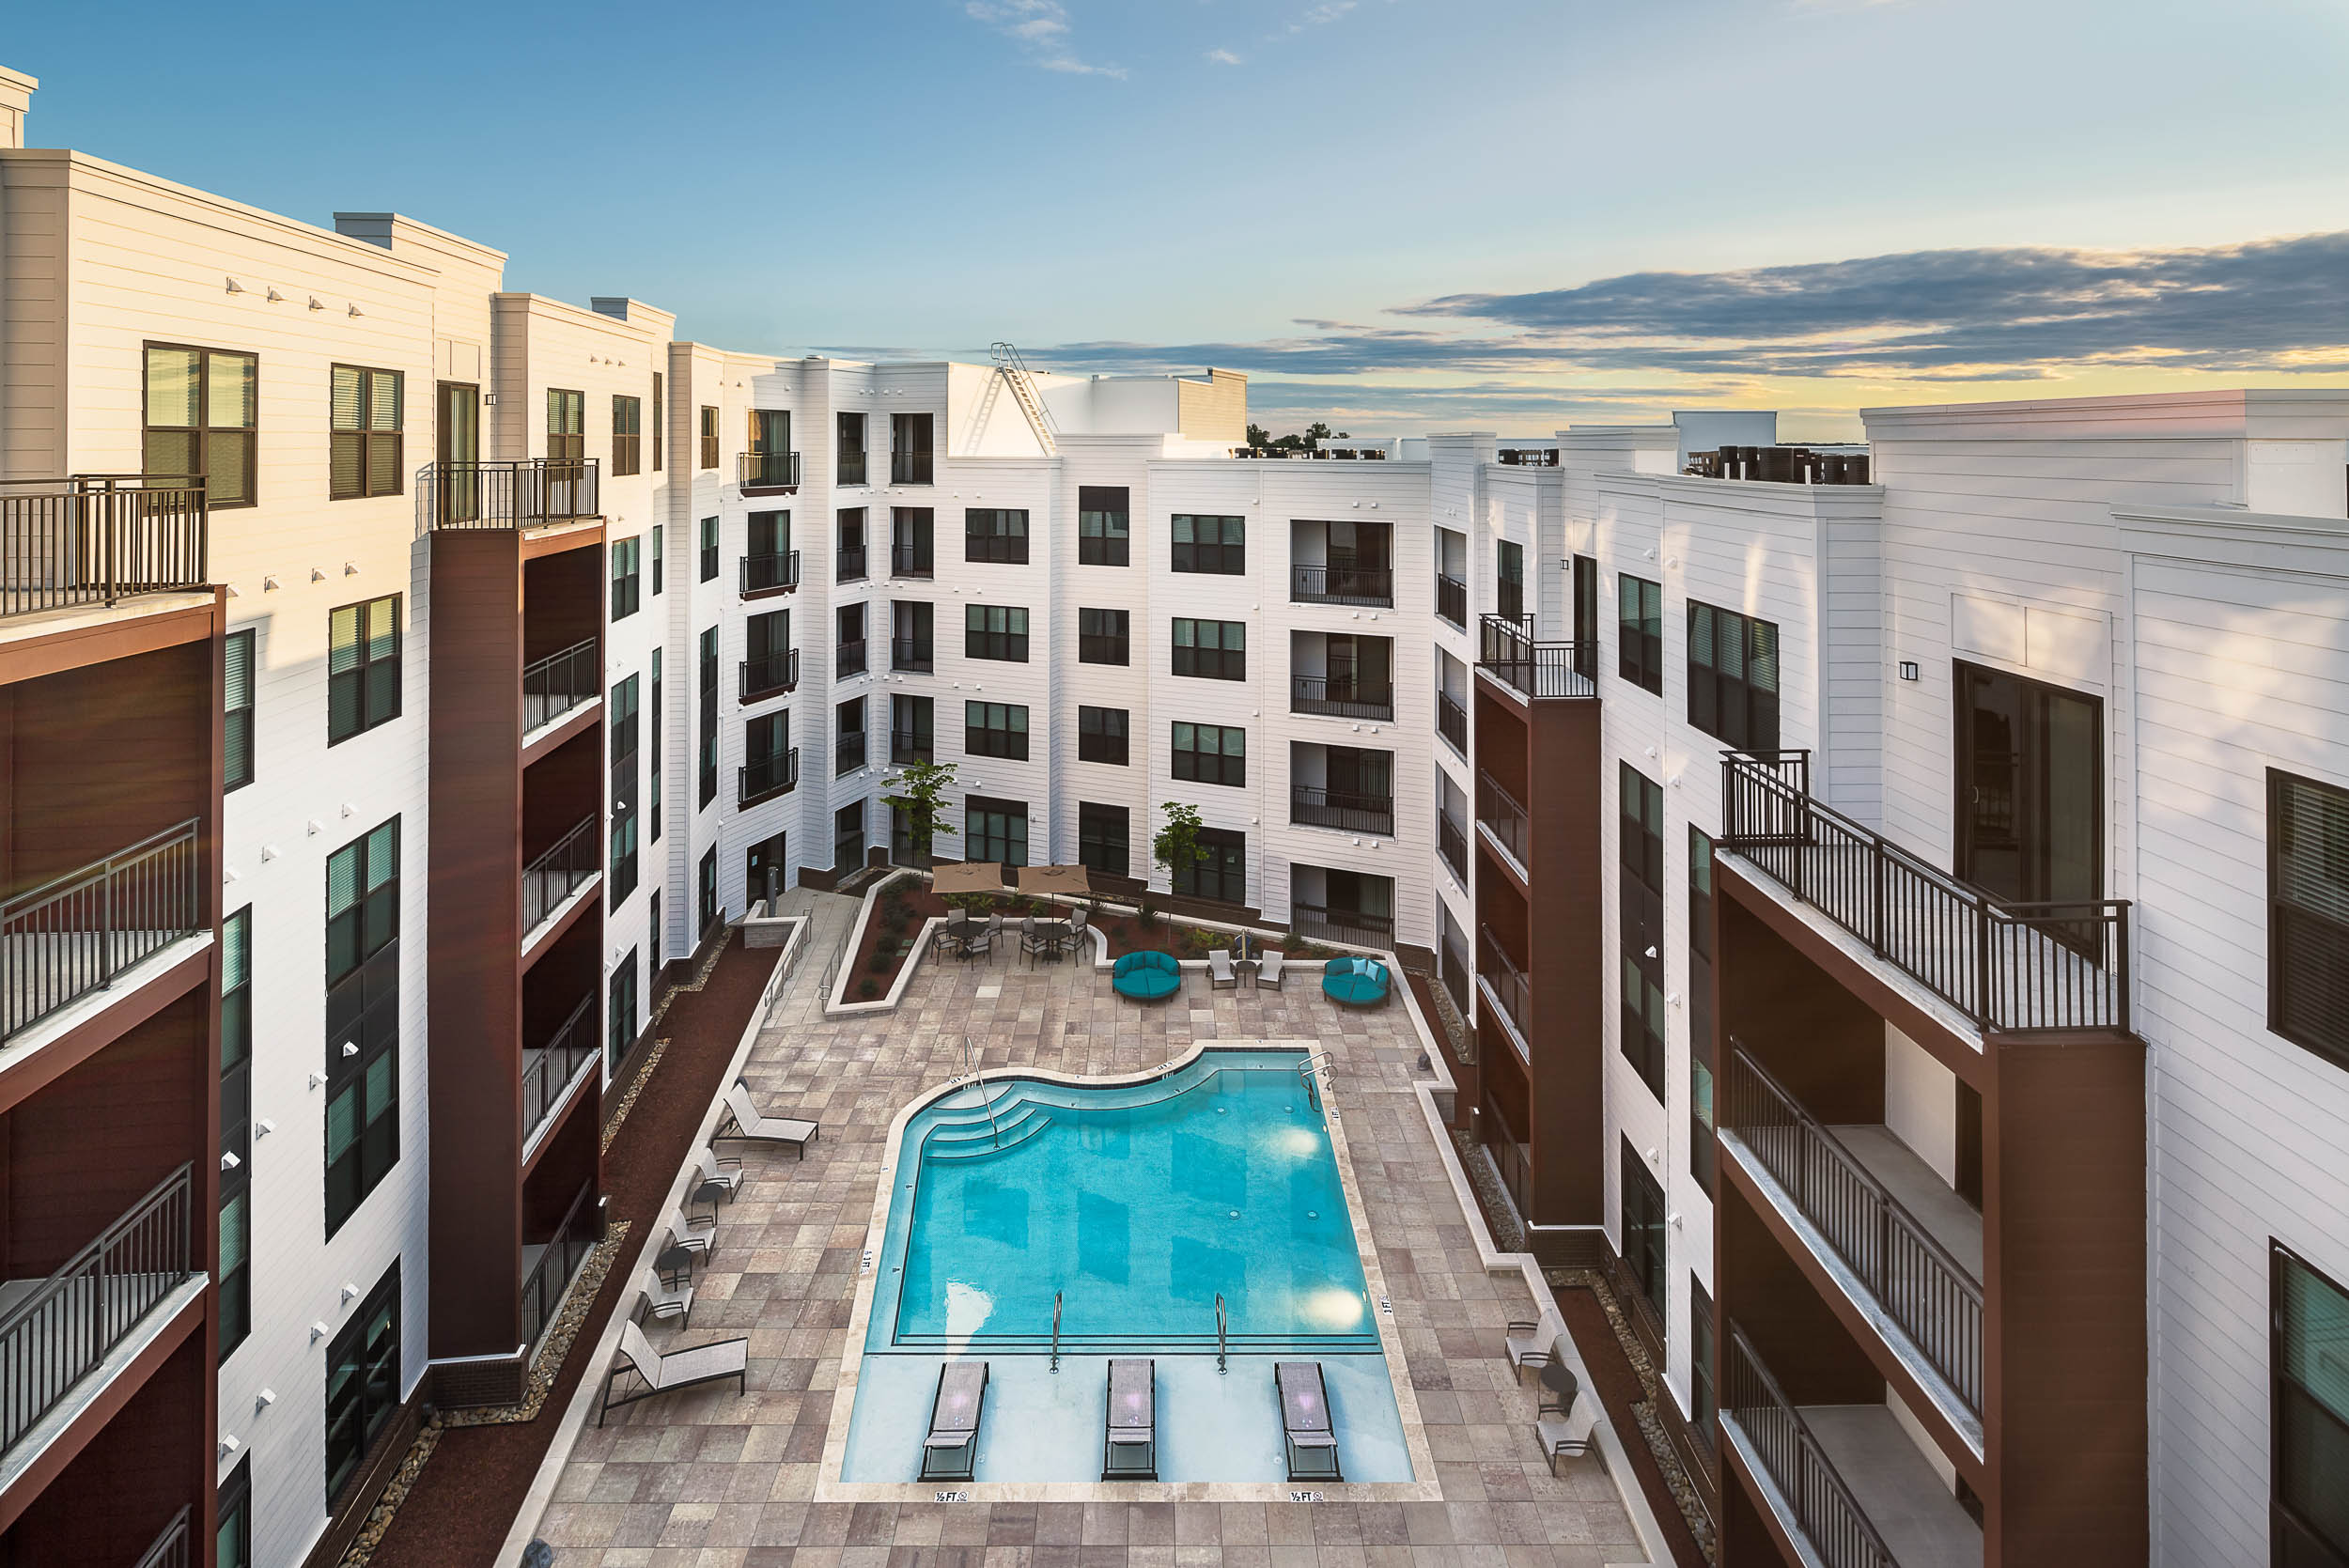 commercial photography image of apartment complex outdoor pool and courtyard